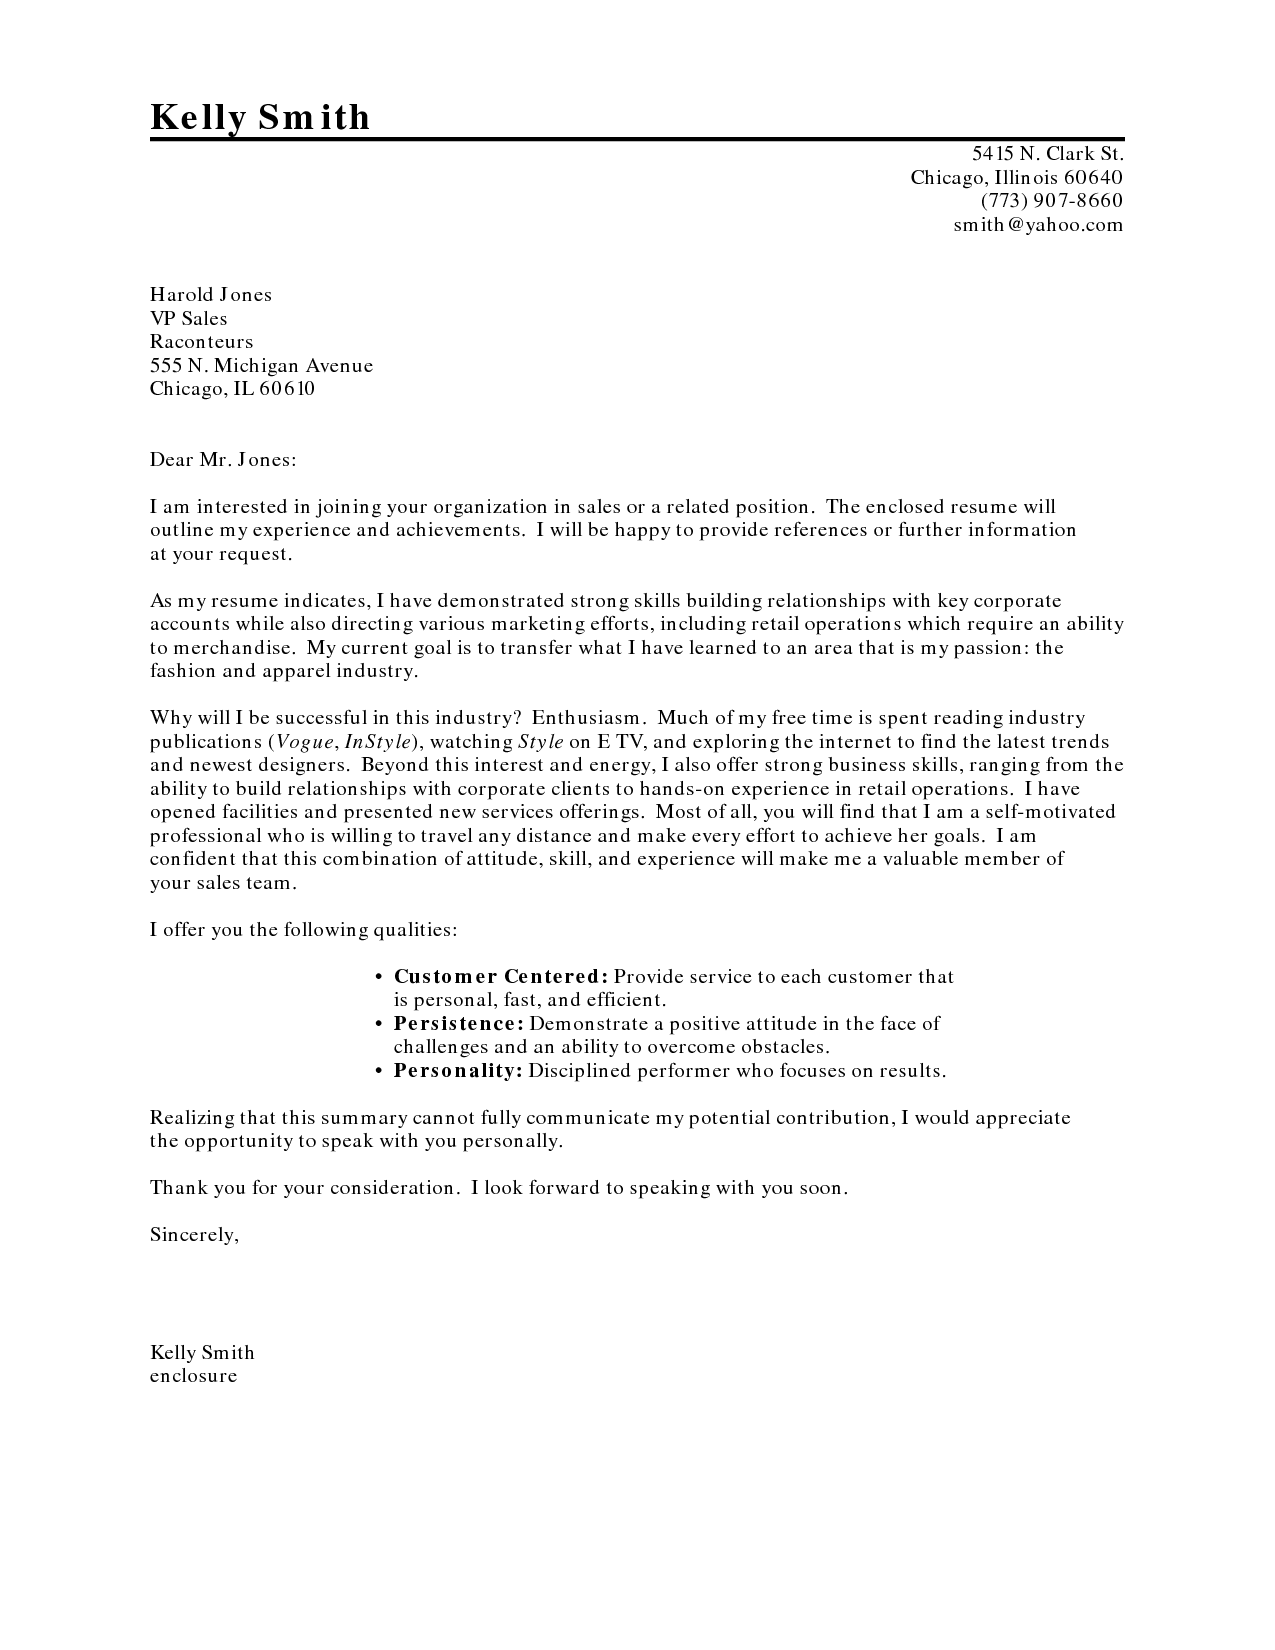 transitioning careers cover letter